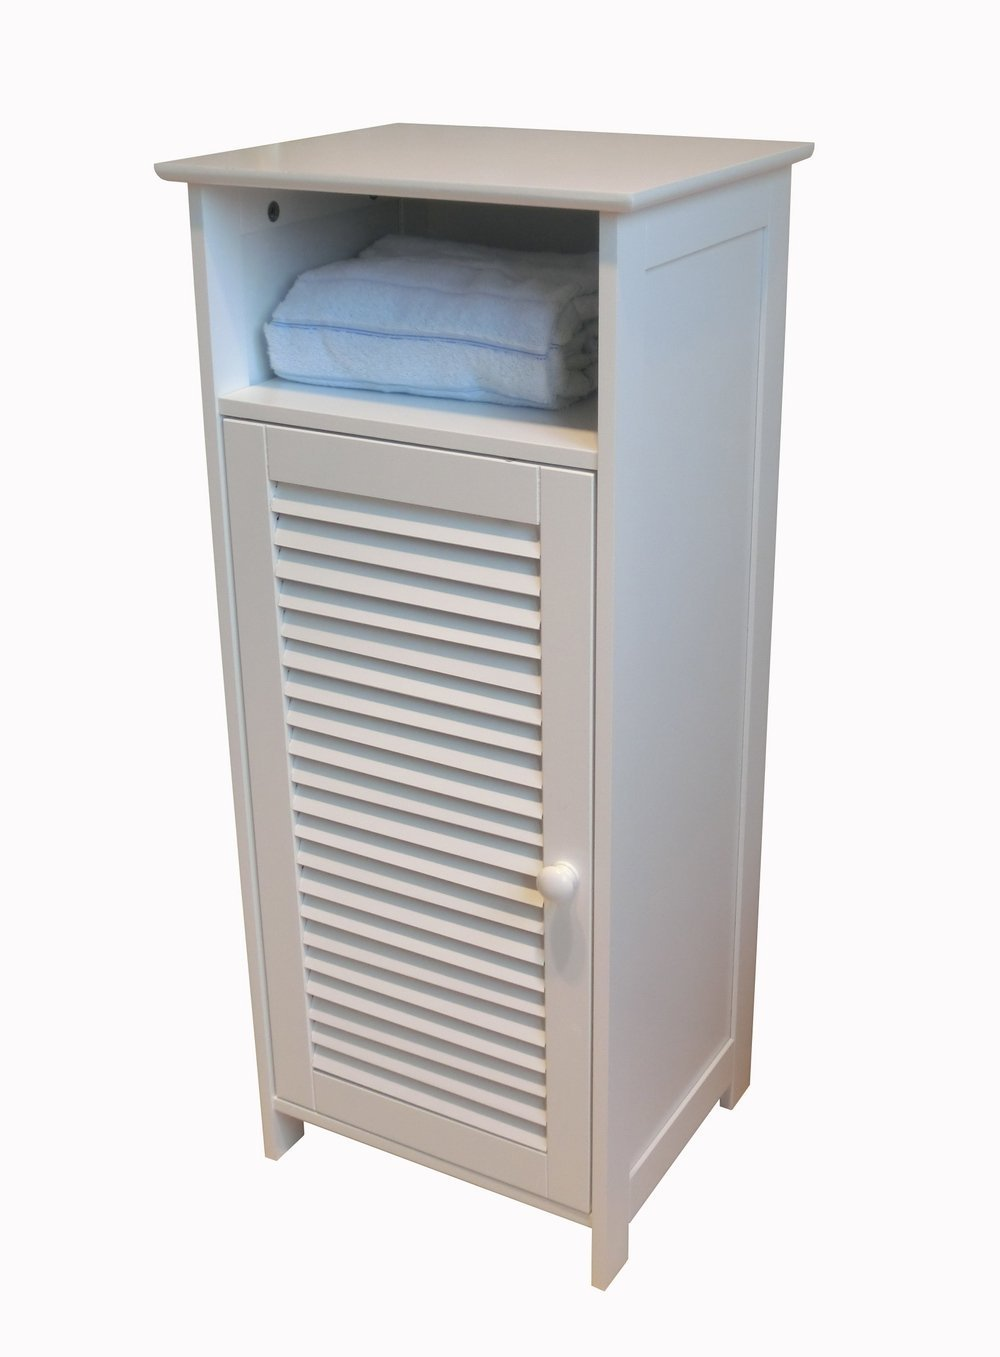 sauder caraway bathroom floor cabinet with door in soft white color